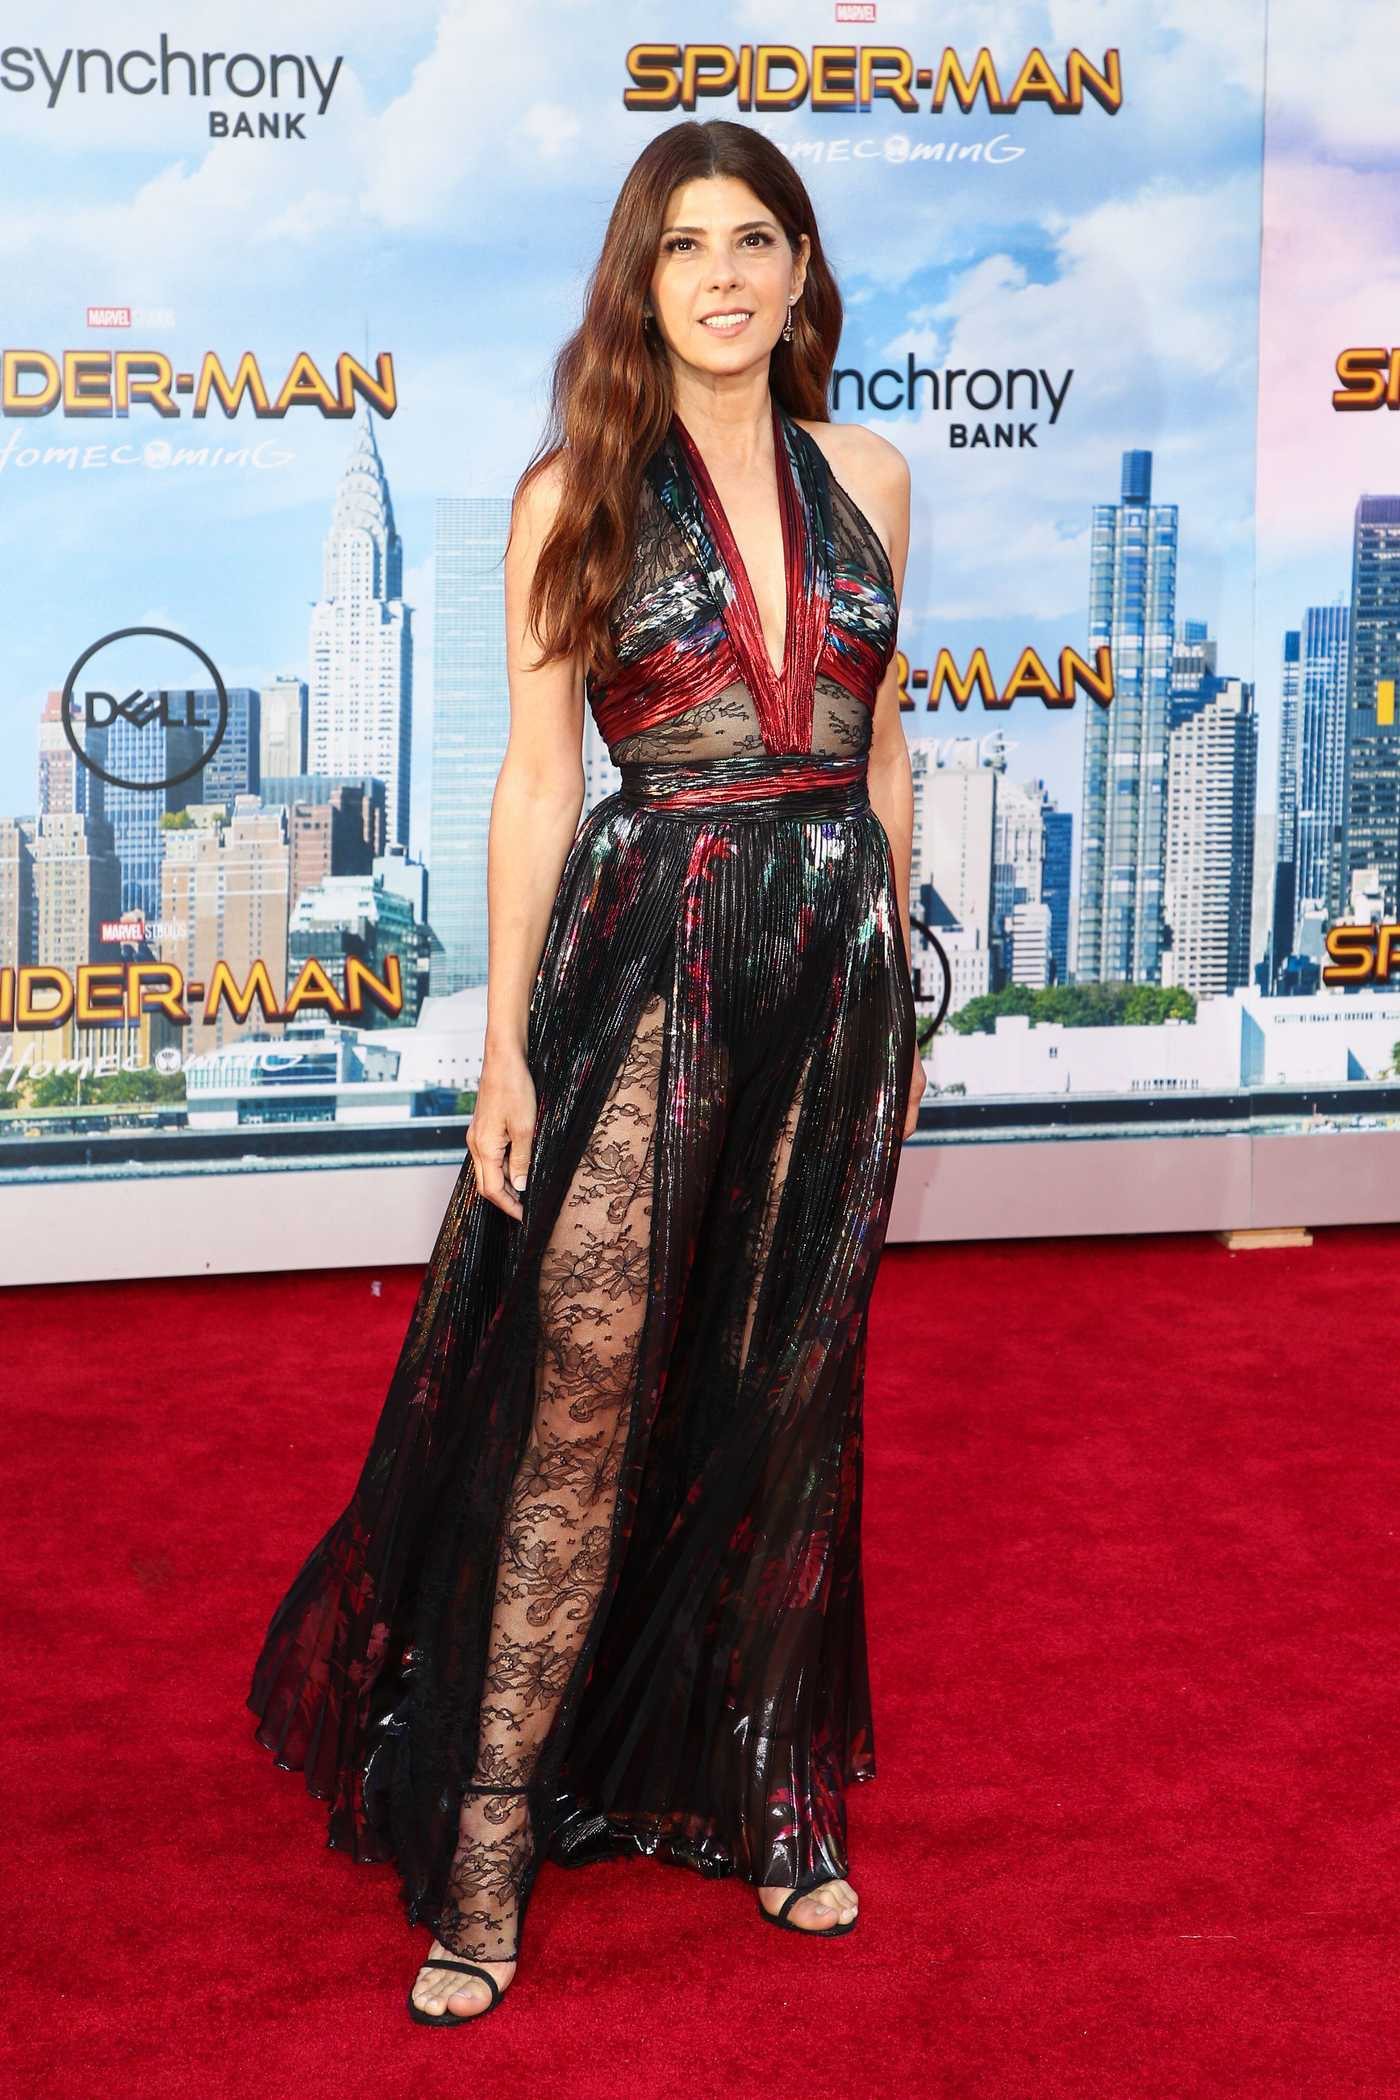 Marisa Tomei at the Spider-Man: Homecoming Premiere in Hollywood 06/28/2017